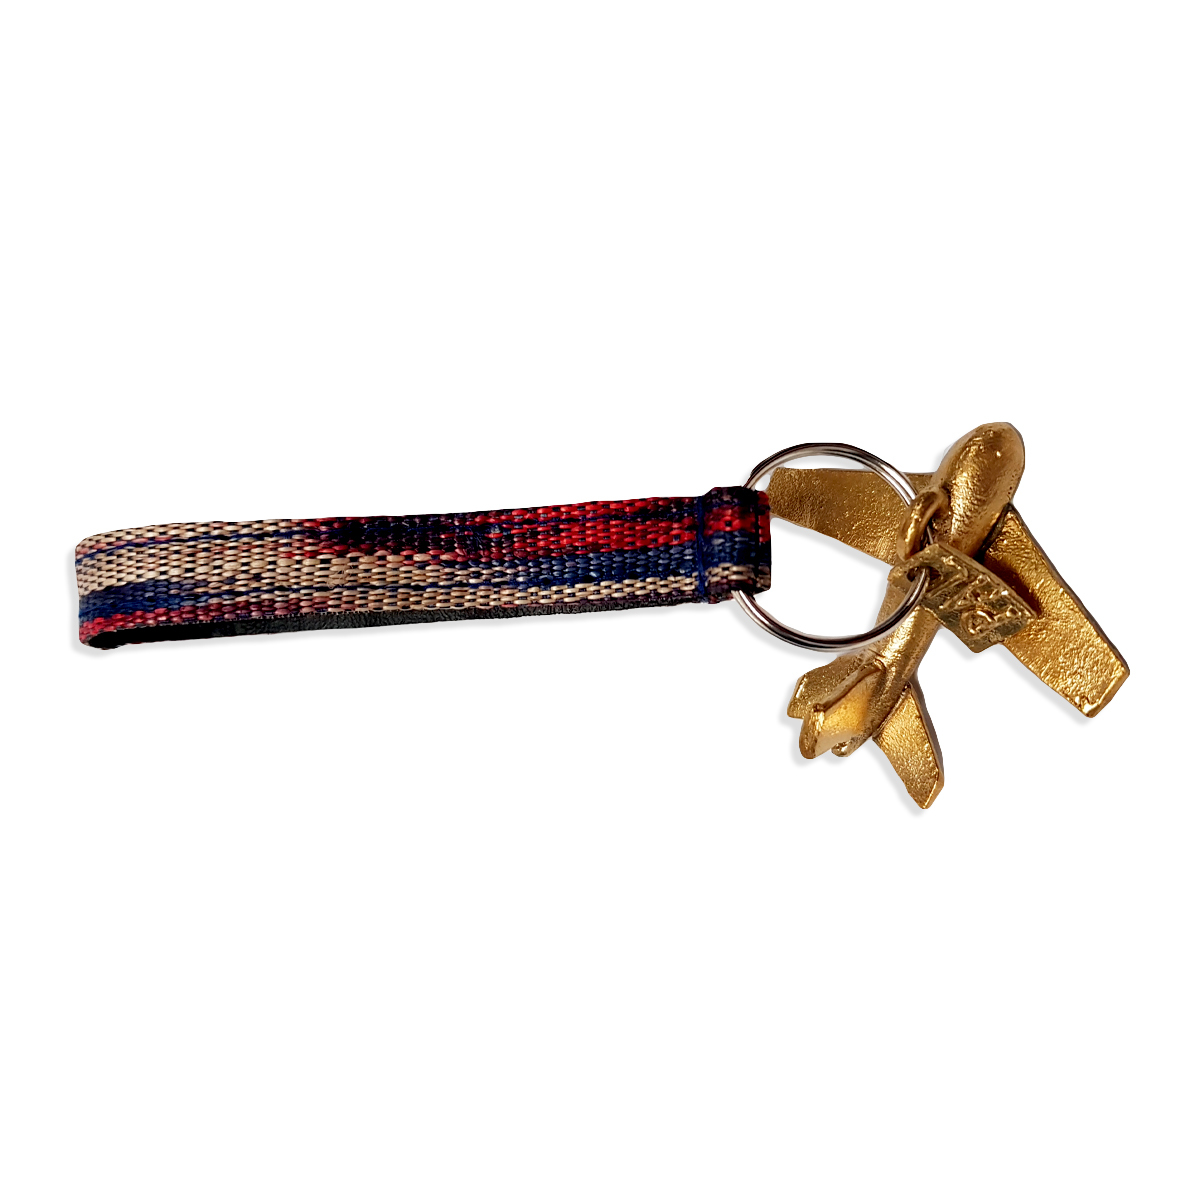 PAL EXCLUSIVES T'BOLI AIRPLANE KEYCHAIN